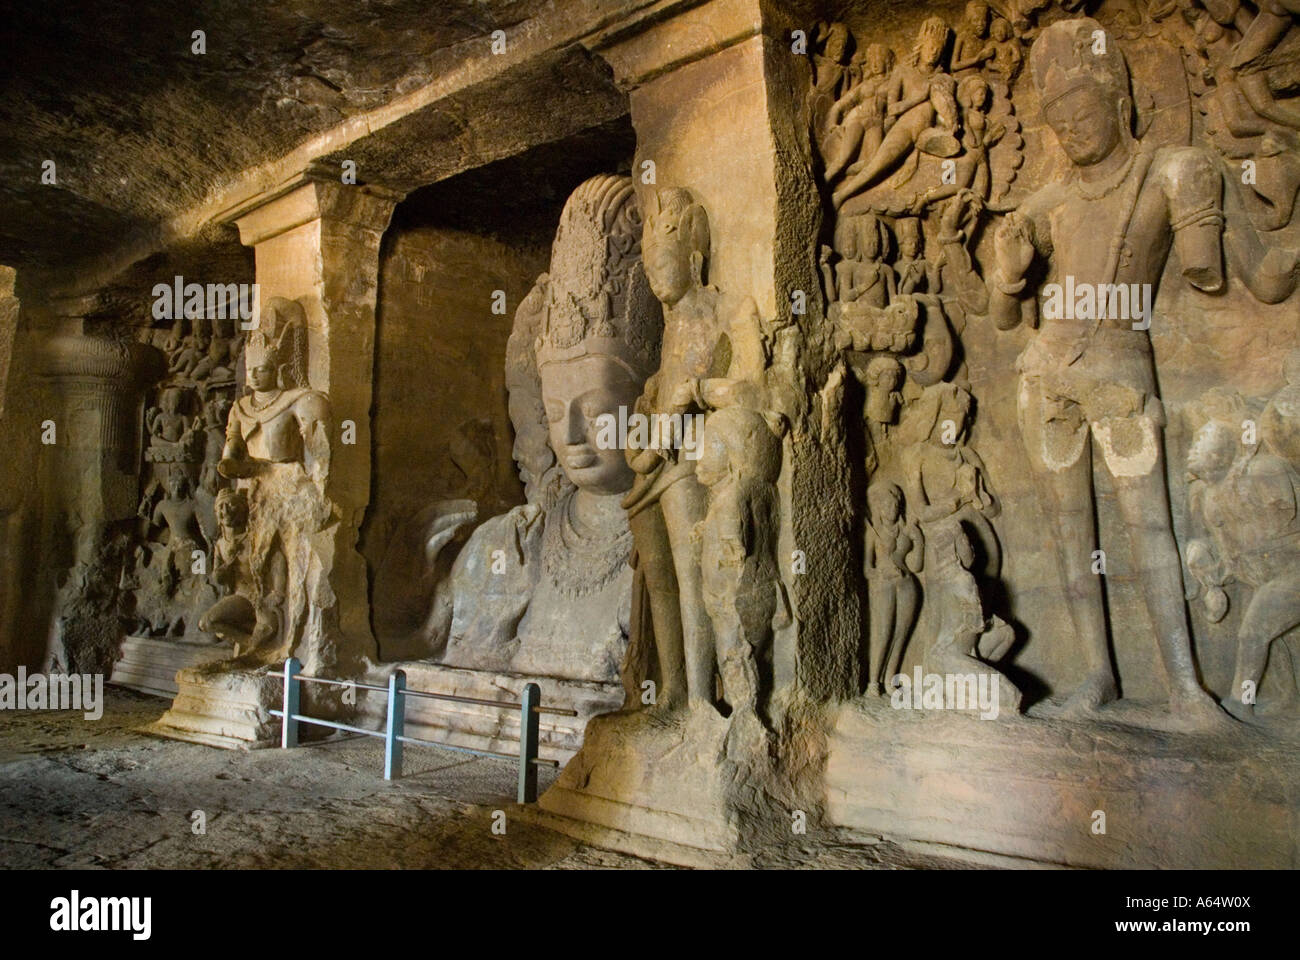 Shiva statues inside the cave temples on Elephanta Island India - Stock Image